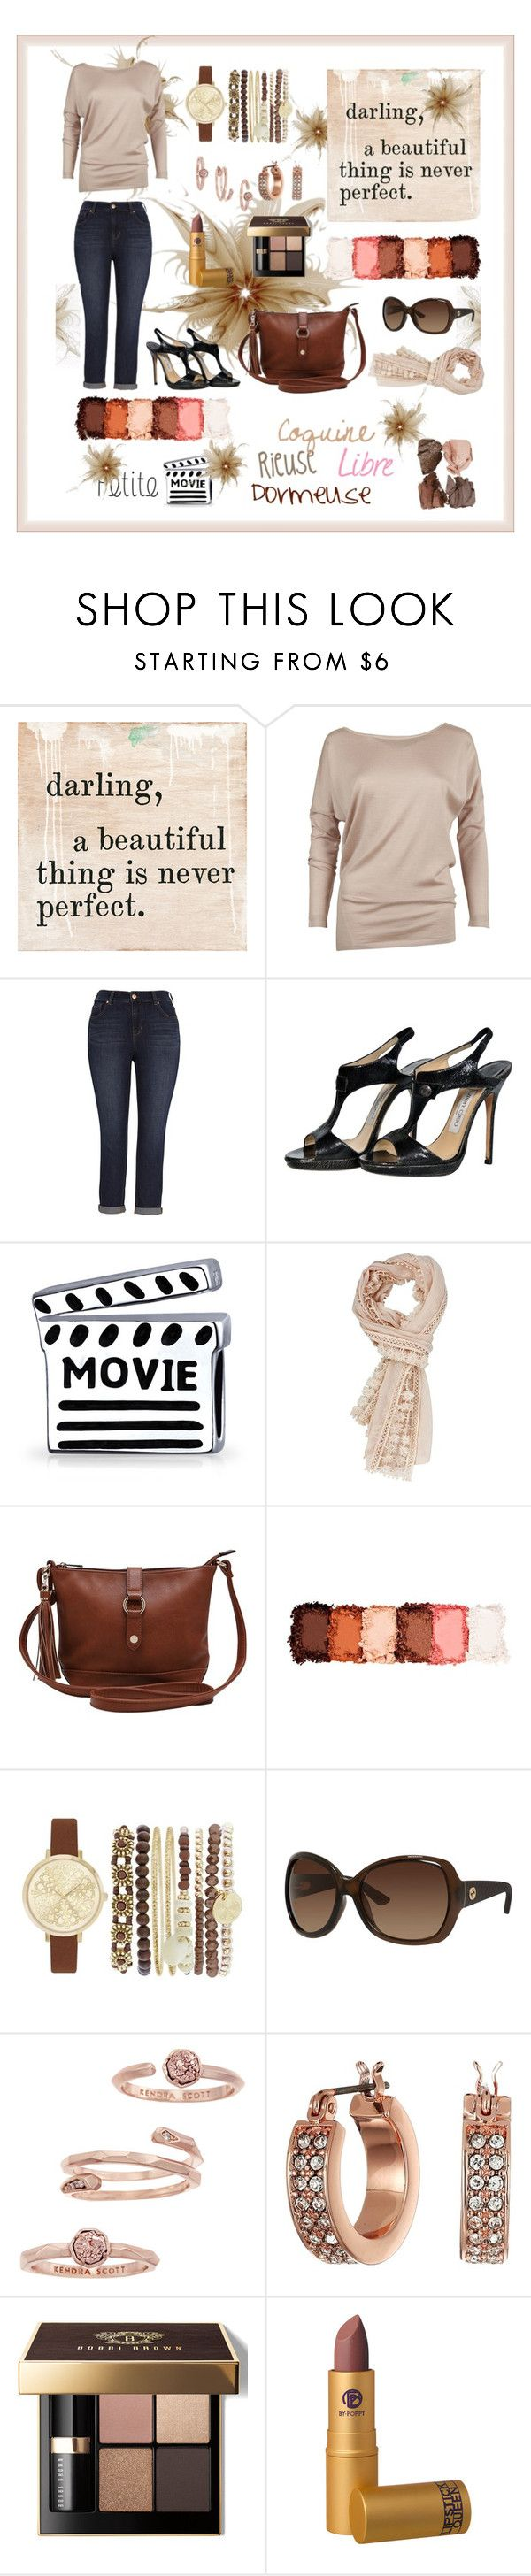 """""""Selfie """" by marinade11 ❤ liked on Polyvore featuring Sugarboo Designs, Ralph Lauren, Melissa McCarthy Seven7, Jimmy Choo, Bling Jewelry, M&Co, NYX, Jessica Carlyle, Gucci and Kendra Scott"""